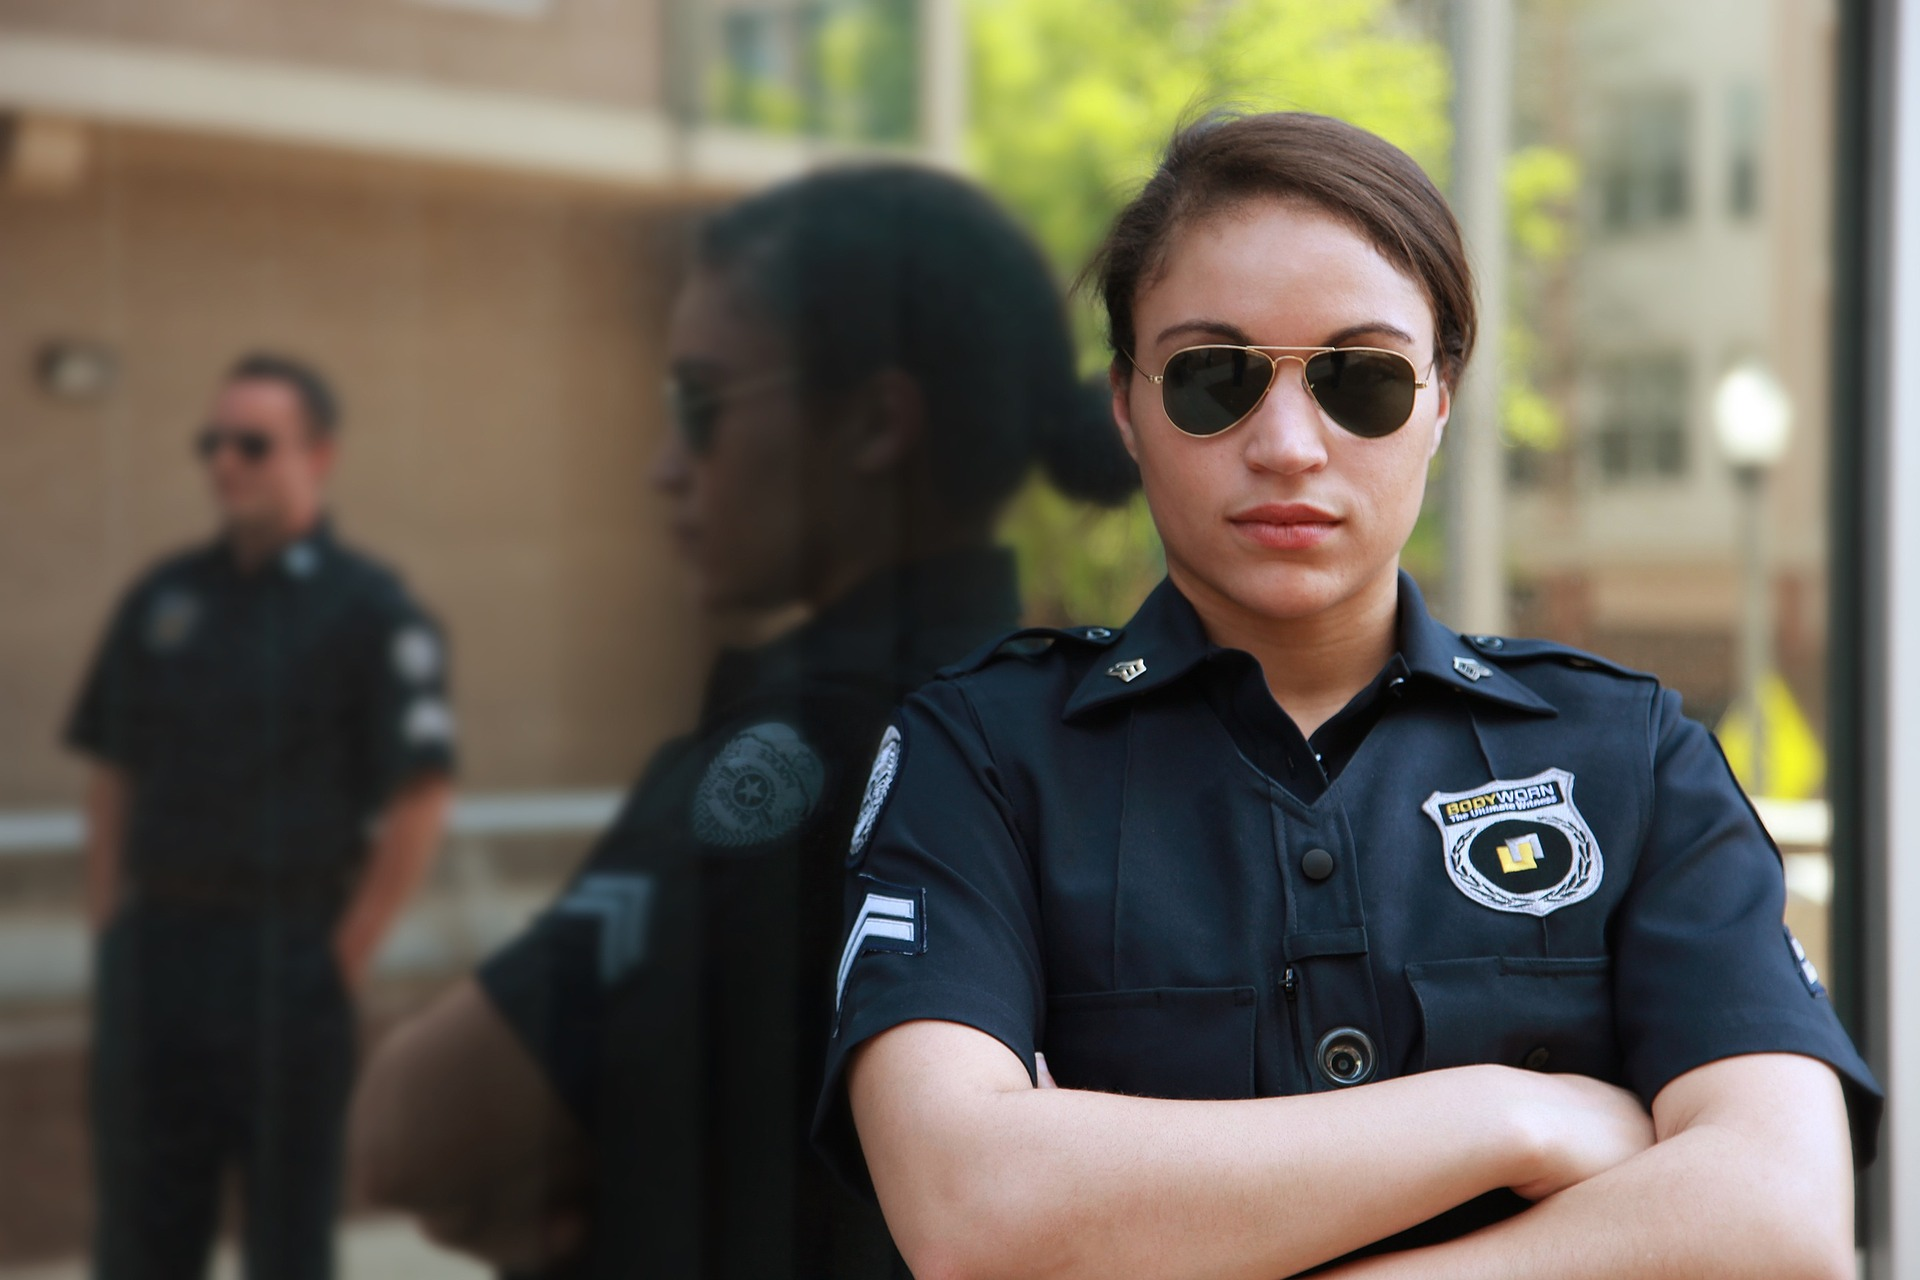 8 Safety Tips for Women, from a Woman Cop